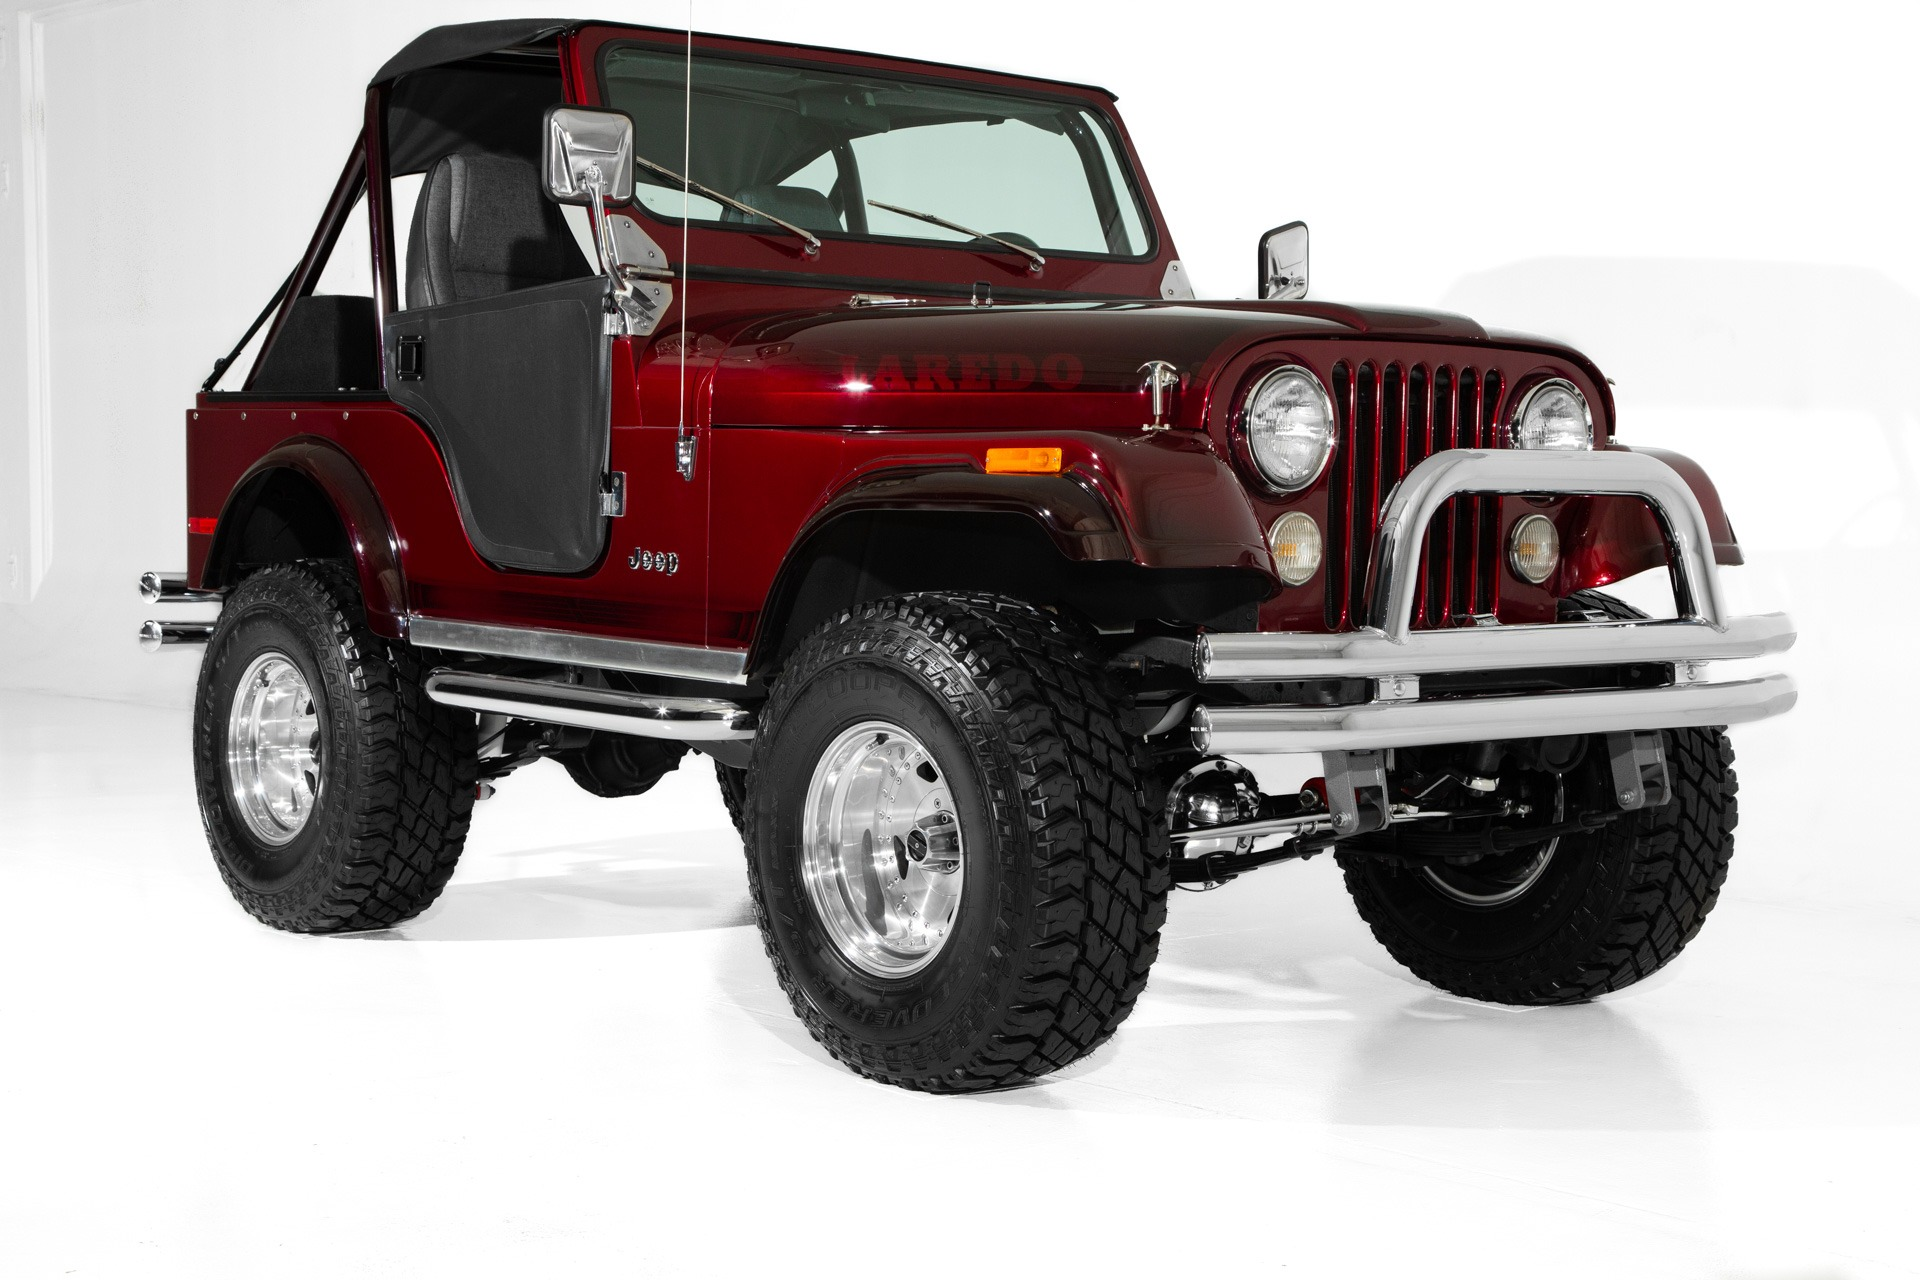 For Sale Used 1978 Jeep CJ5 Brandywine Show Jeep, V8 | American Dream Machines Des Moines IA 50309